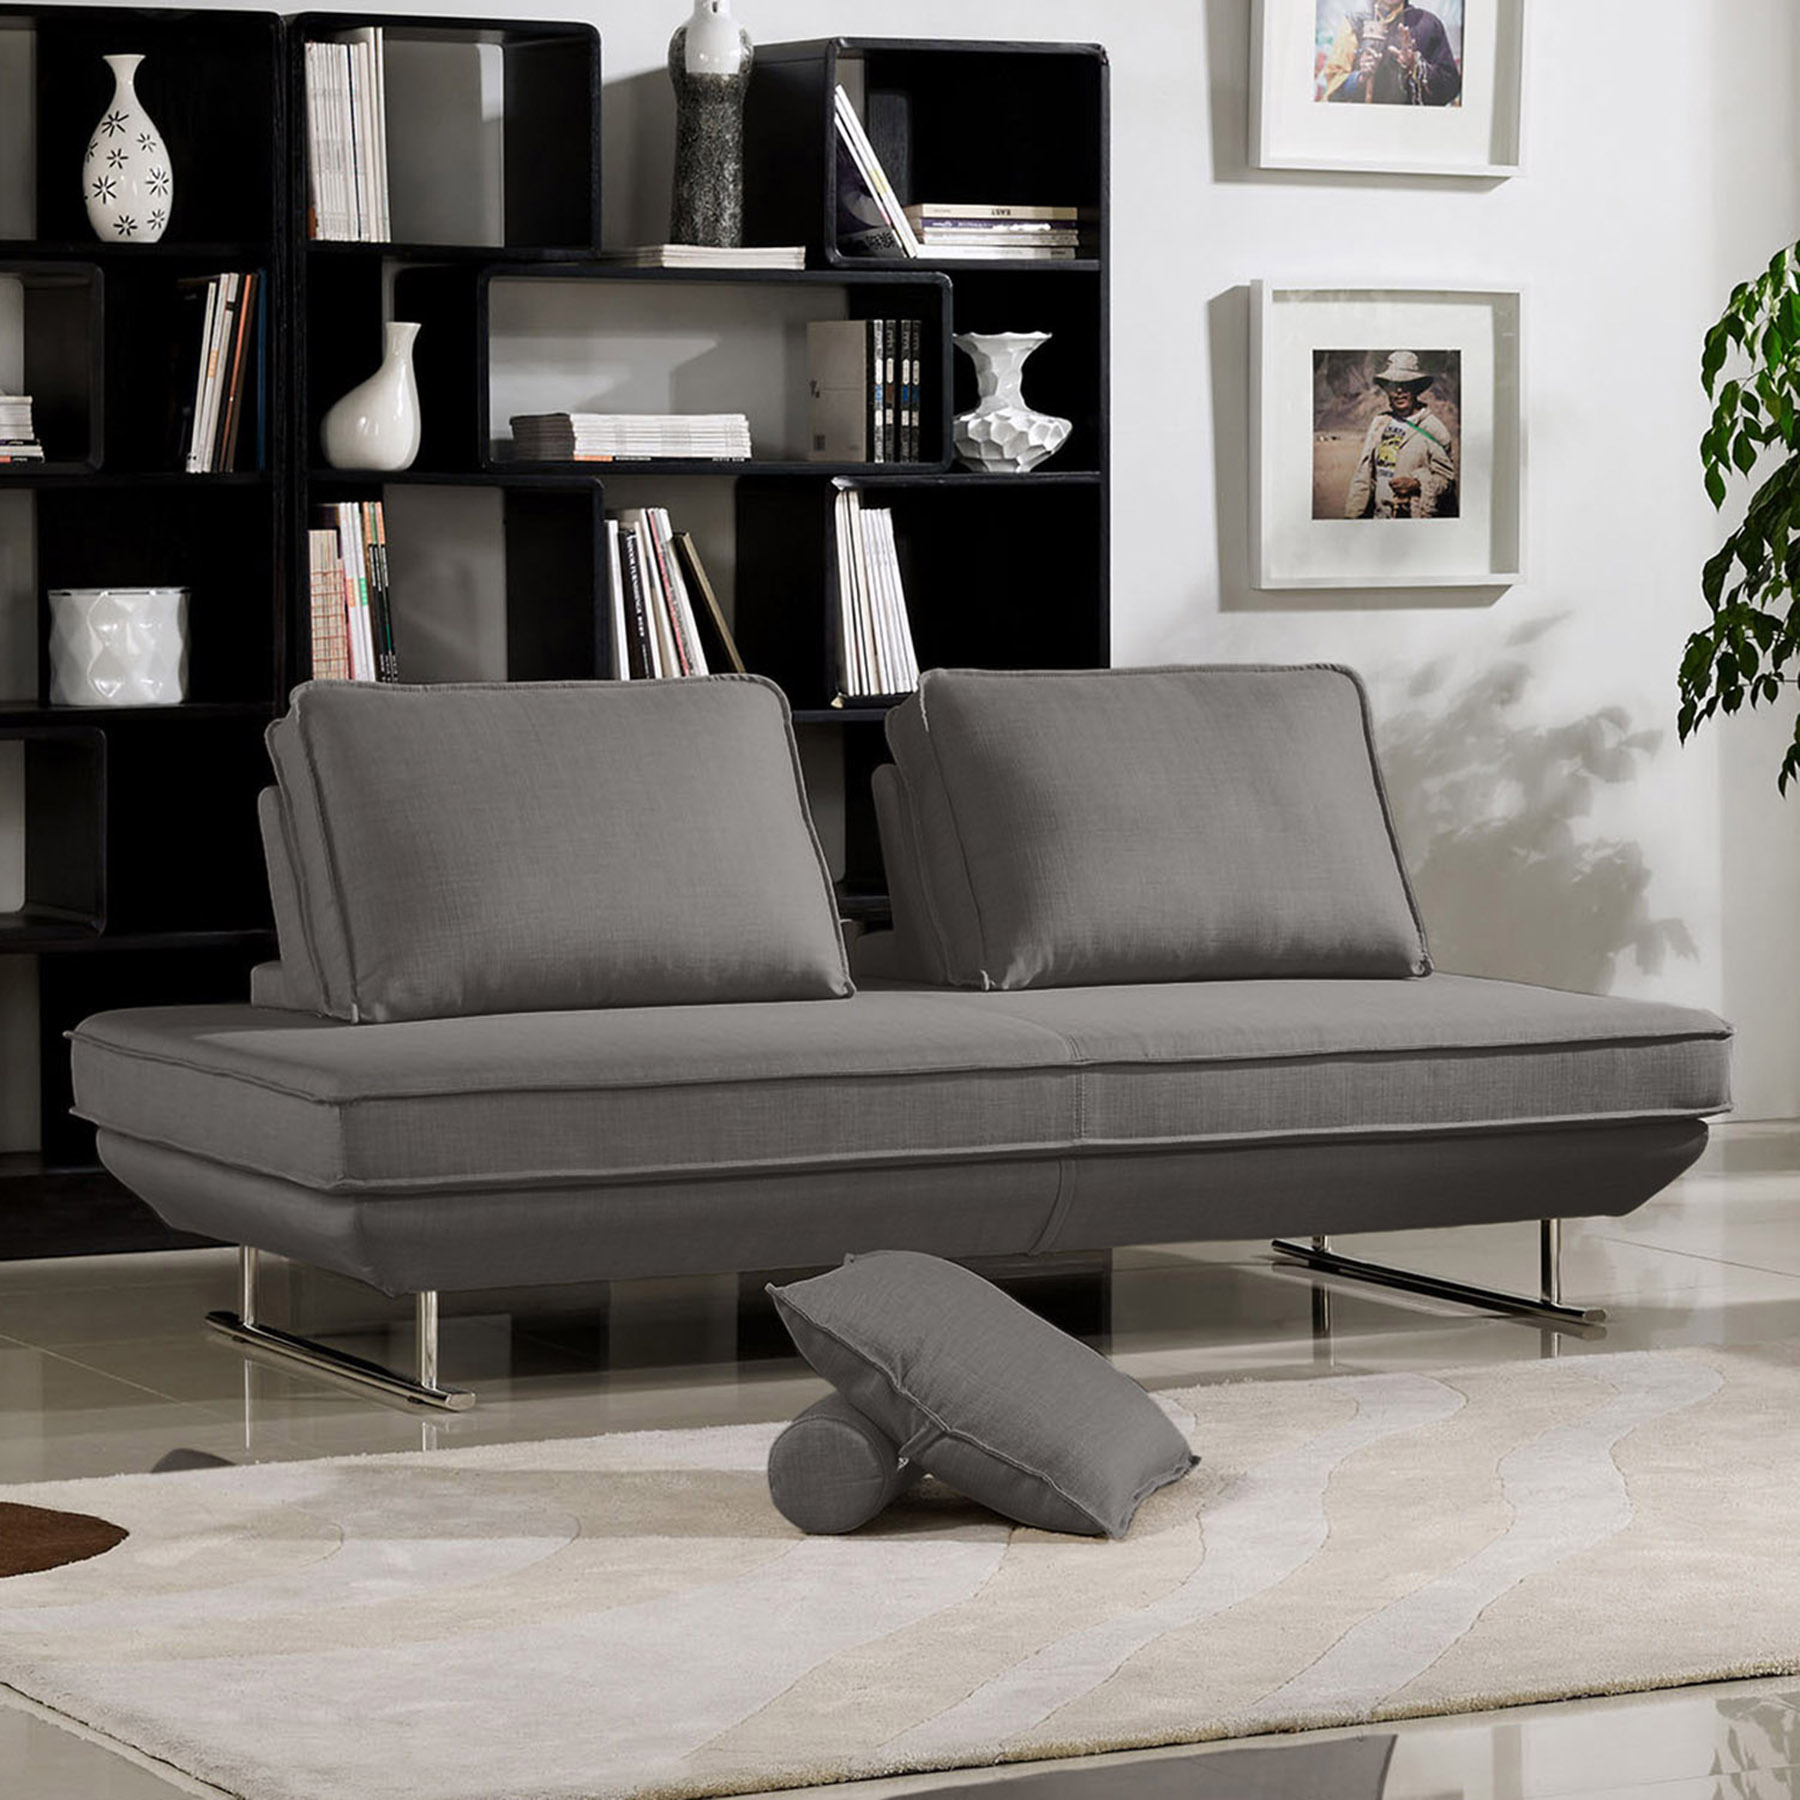 diamond sofa dolce modern sectional sofas for sale lounge chair moveable backrest gray fabric dcg